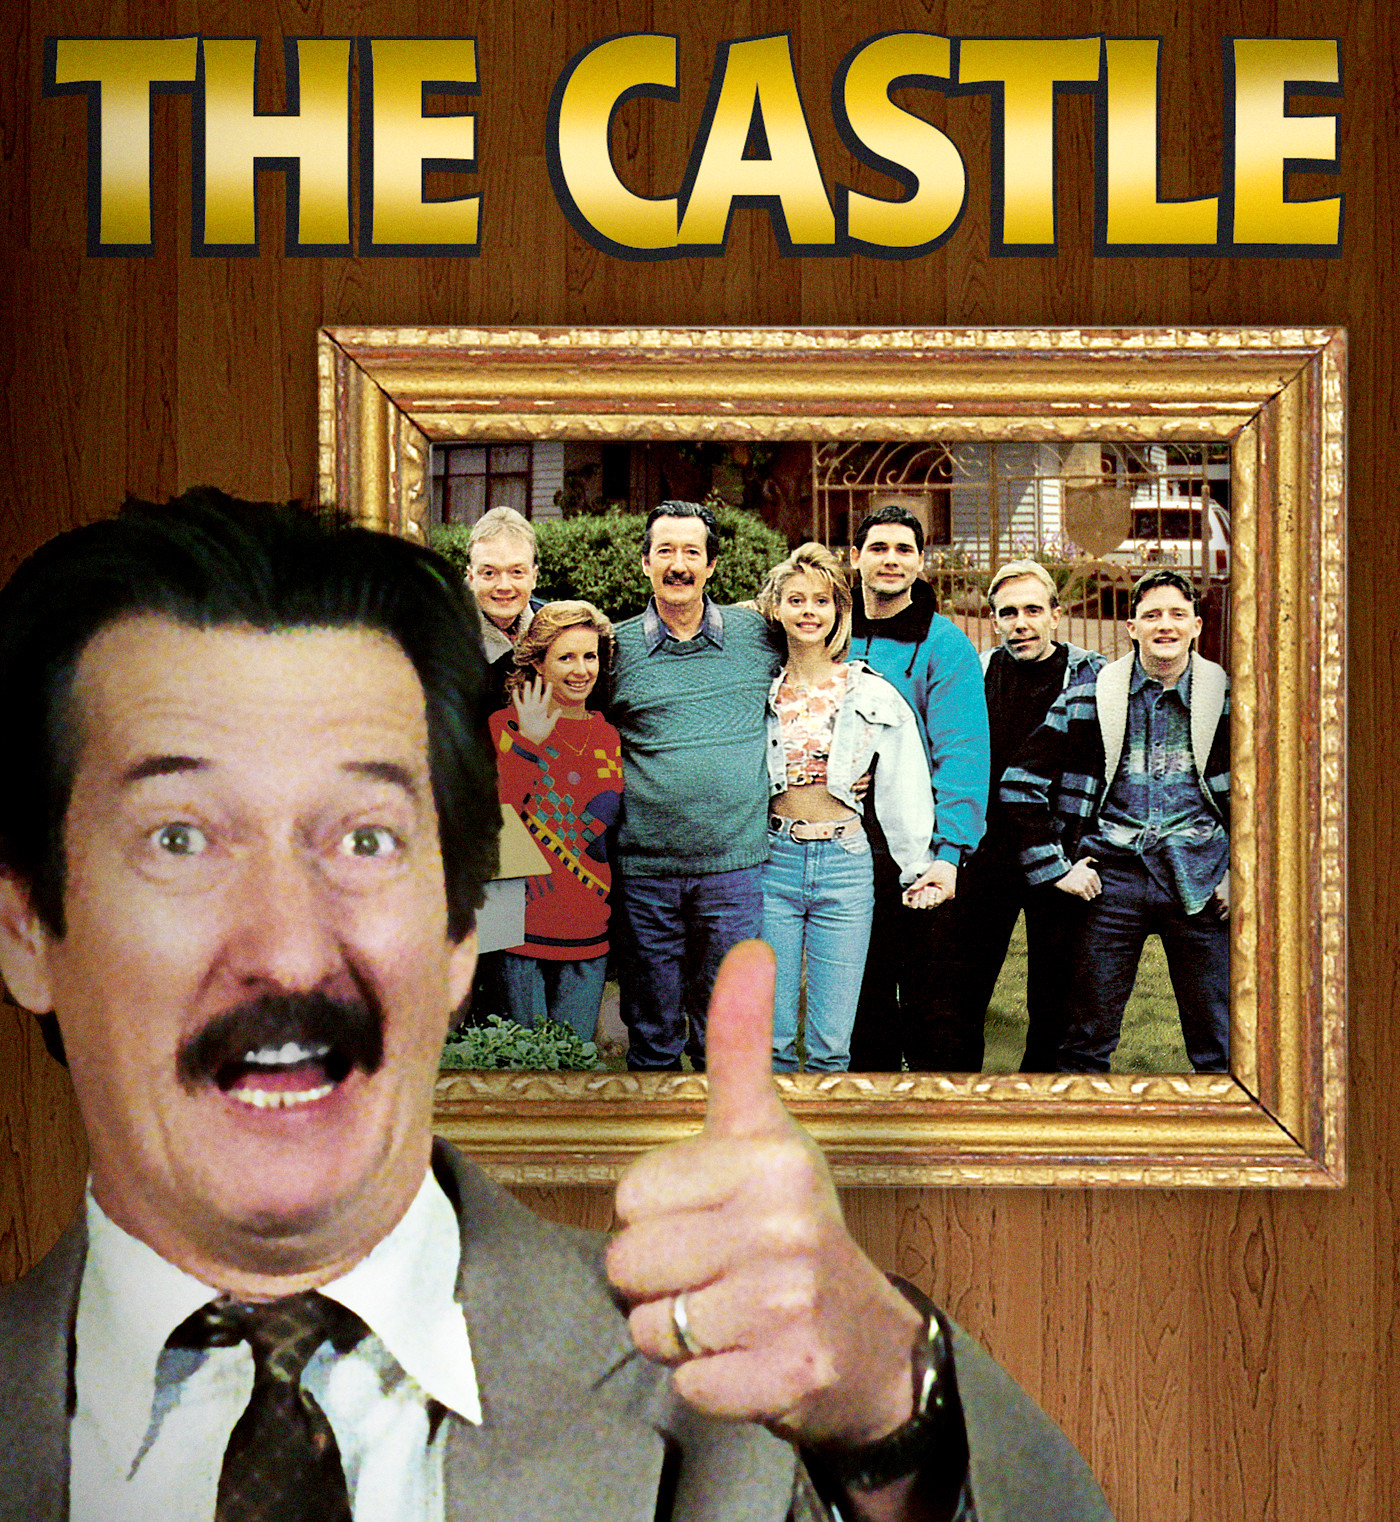 The Castle Movie - Daily Devotional